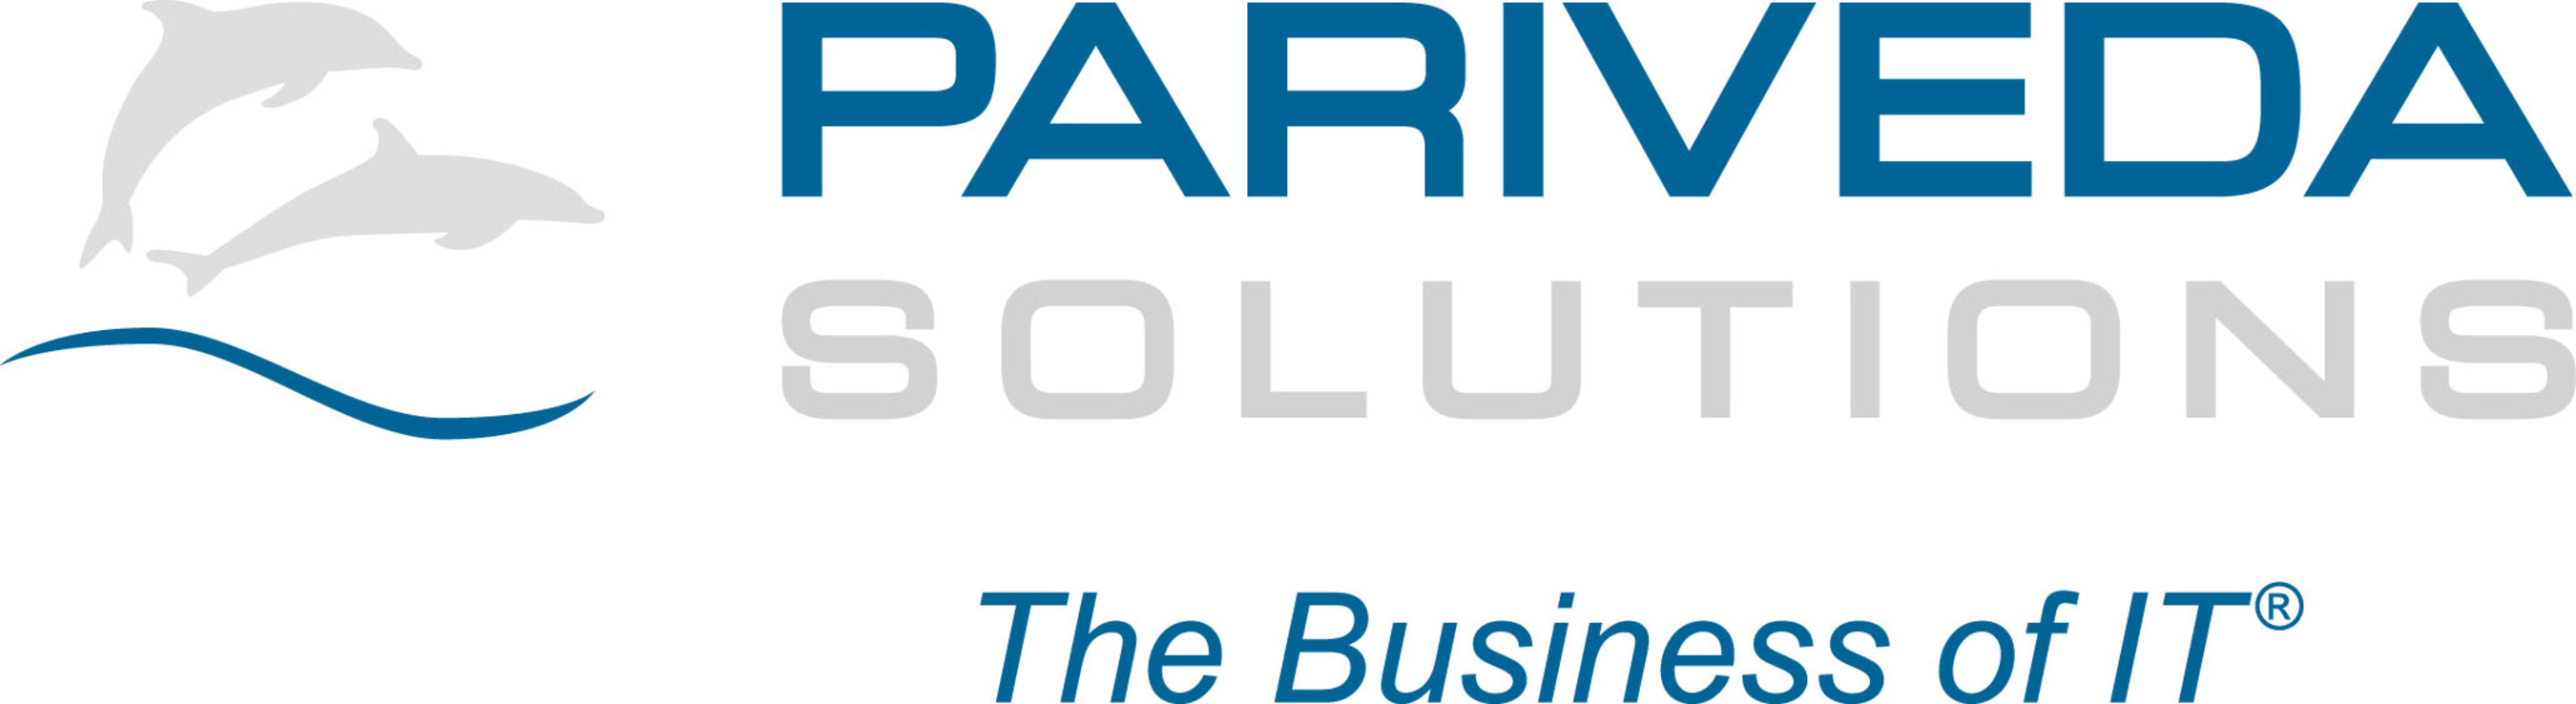 Pariveda Solutions, Inc. is a leading technology consulting firm delivering strategic services and technology solutions. (PRNewsFoto/Pariveda Solutions, Inc.)